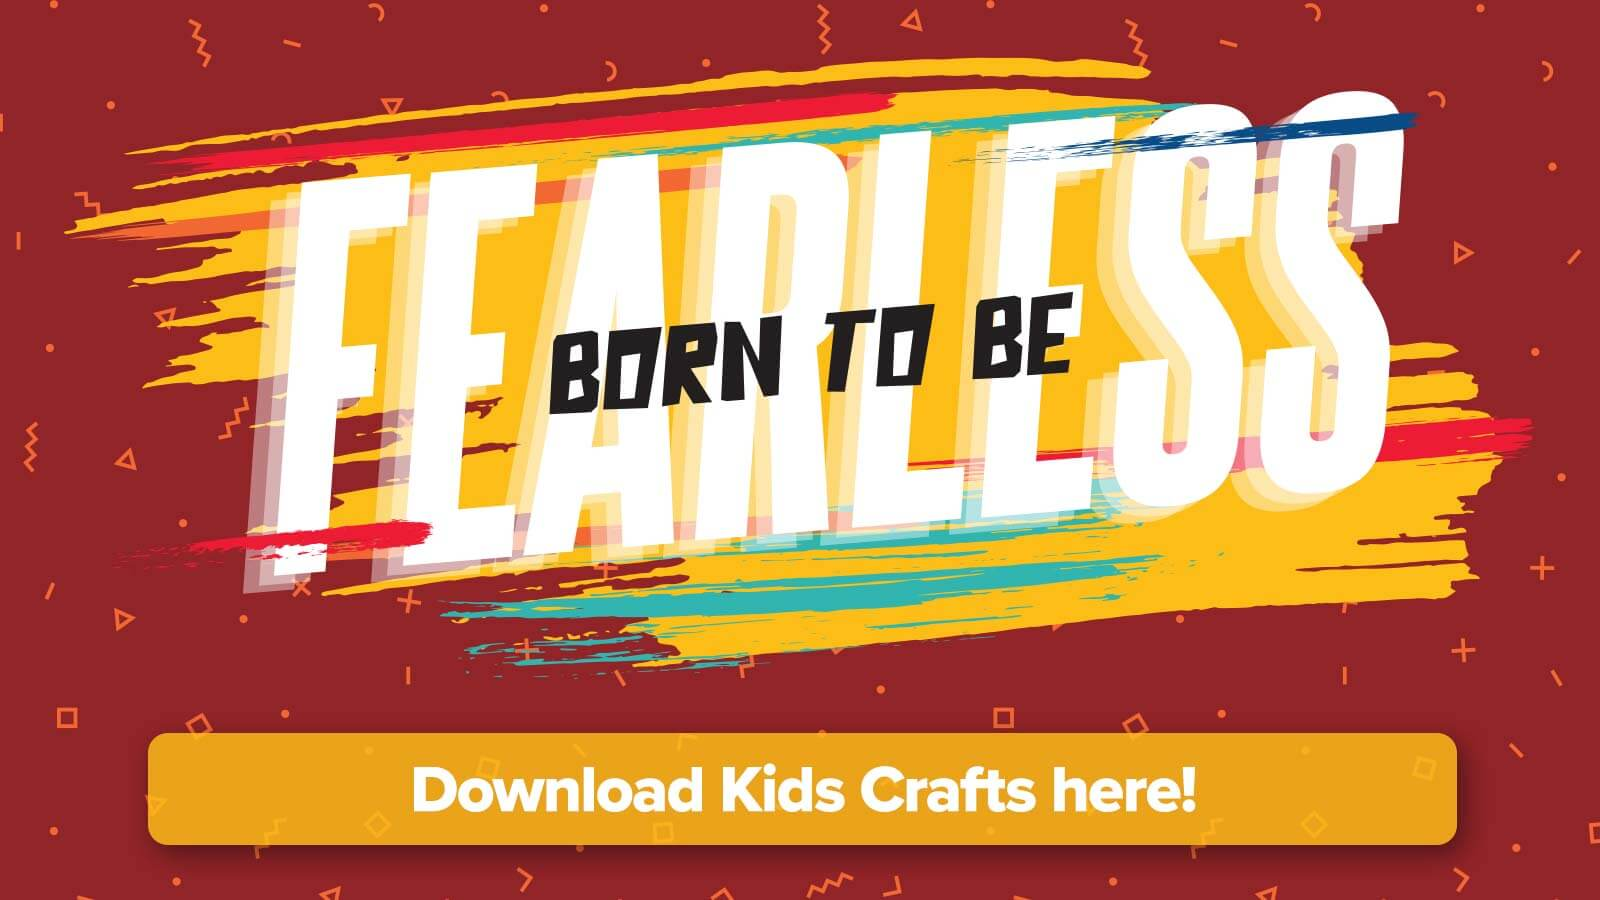 Click here to download Kids Crafts and Worksheets!